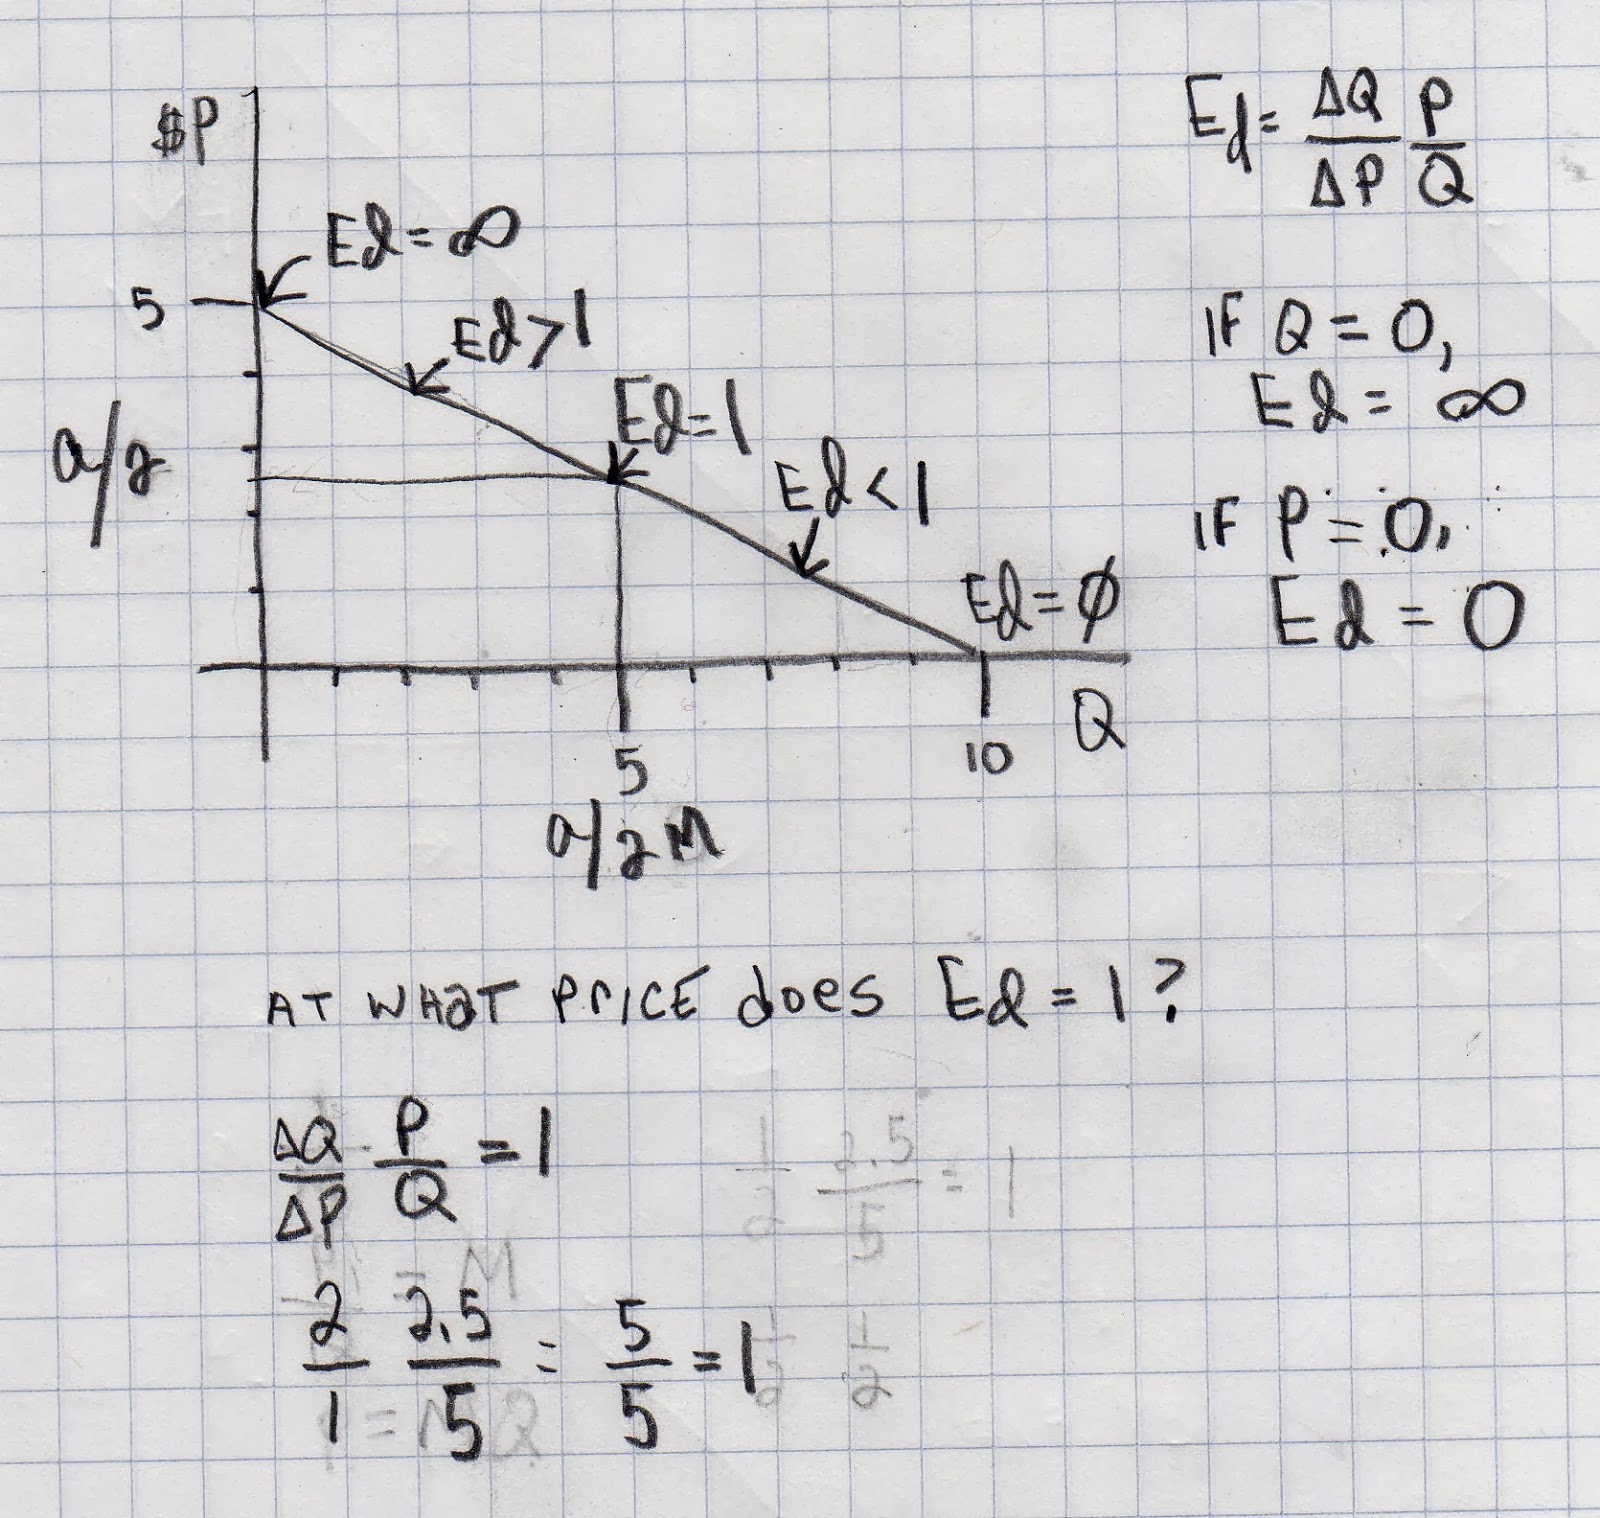 NEW ELASTICITY OF DEMAND WORD PROBLEMS